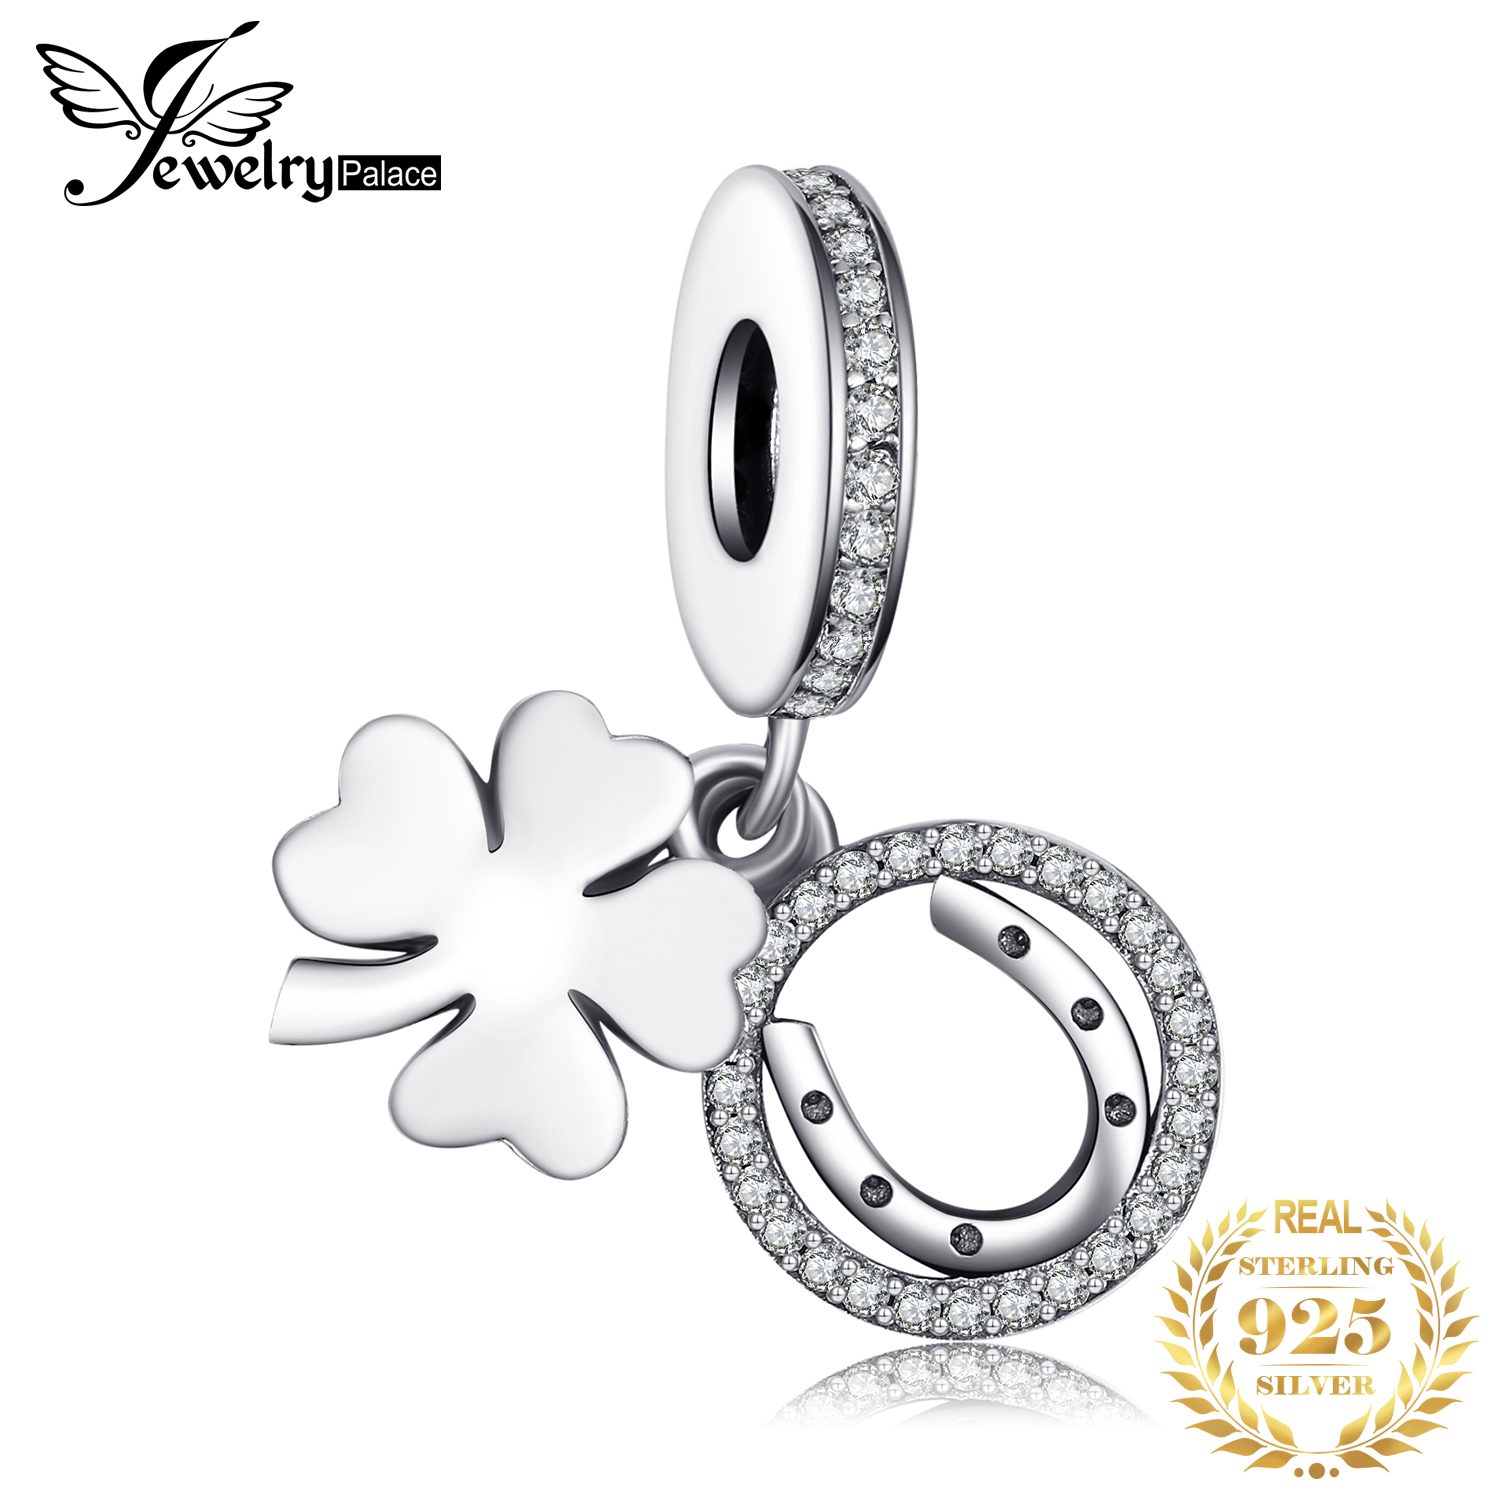 JewelryPalace Leaf Clover 925 Sterling Silver Beads Charms Silver 925 Original For Bracelet Silver 925 original Jewelry Making